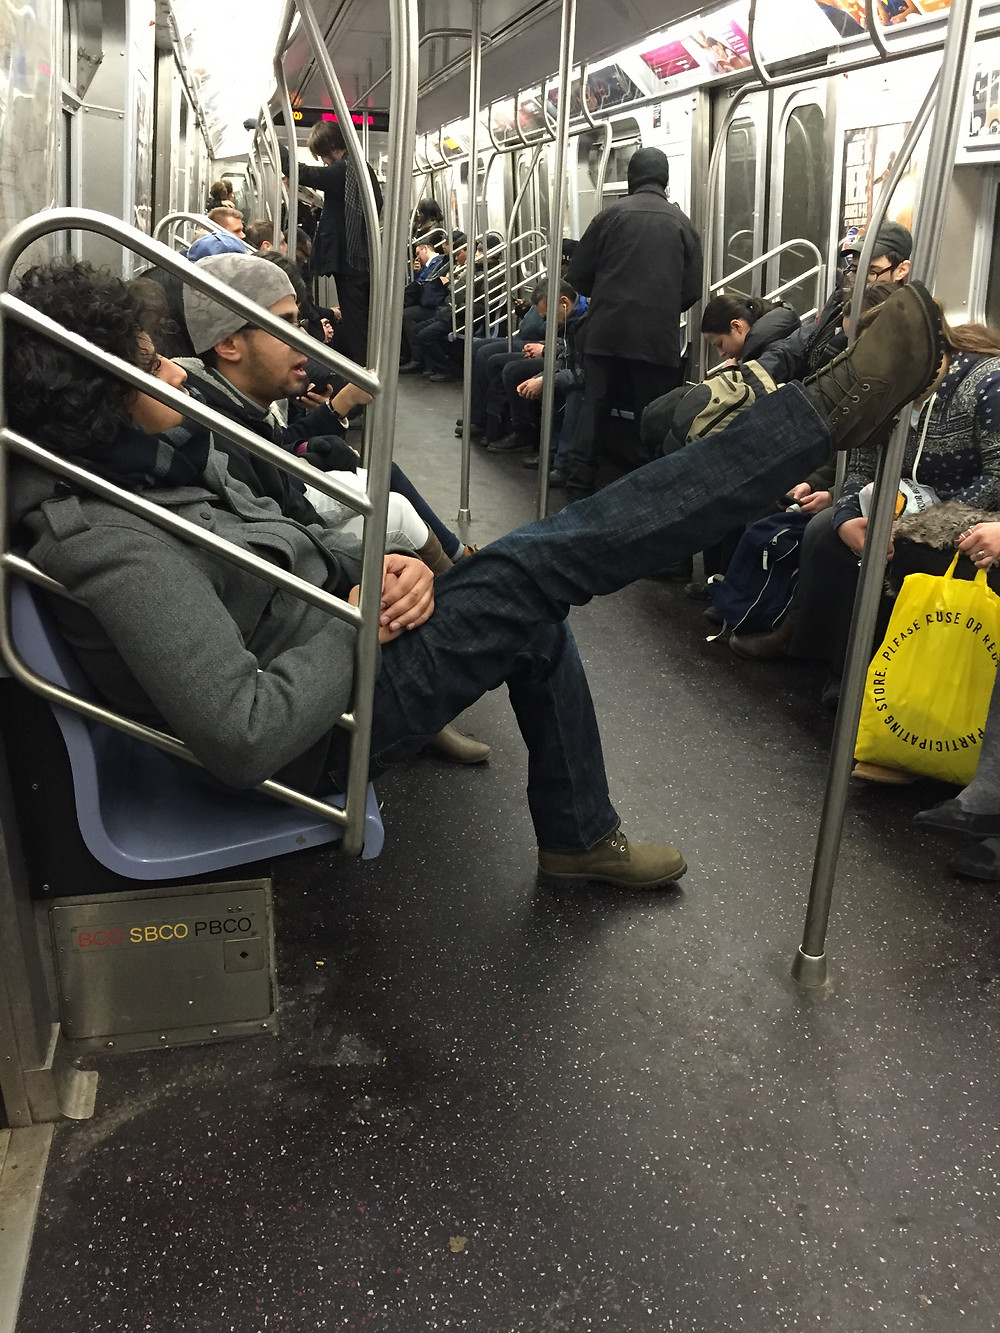 Rude guy relaxing with foot up on the subway pole, blocking people from passing